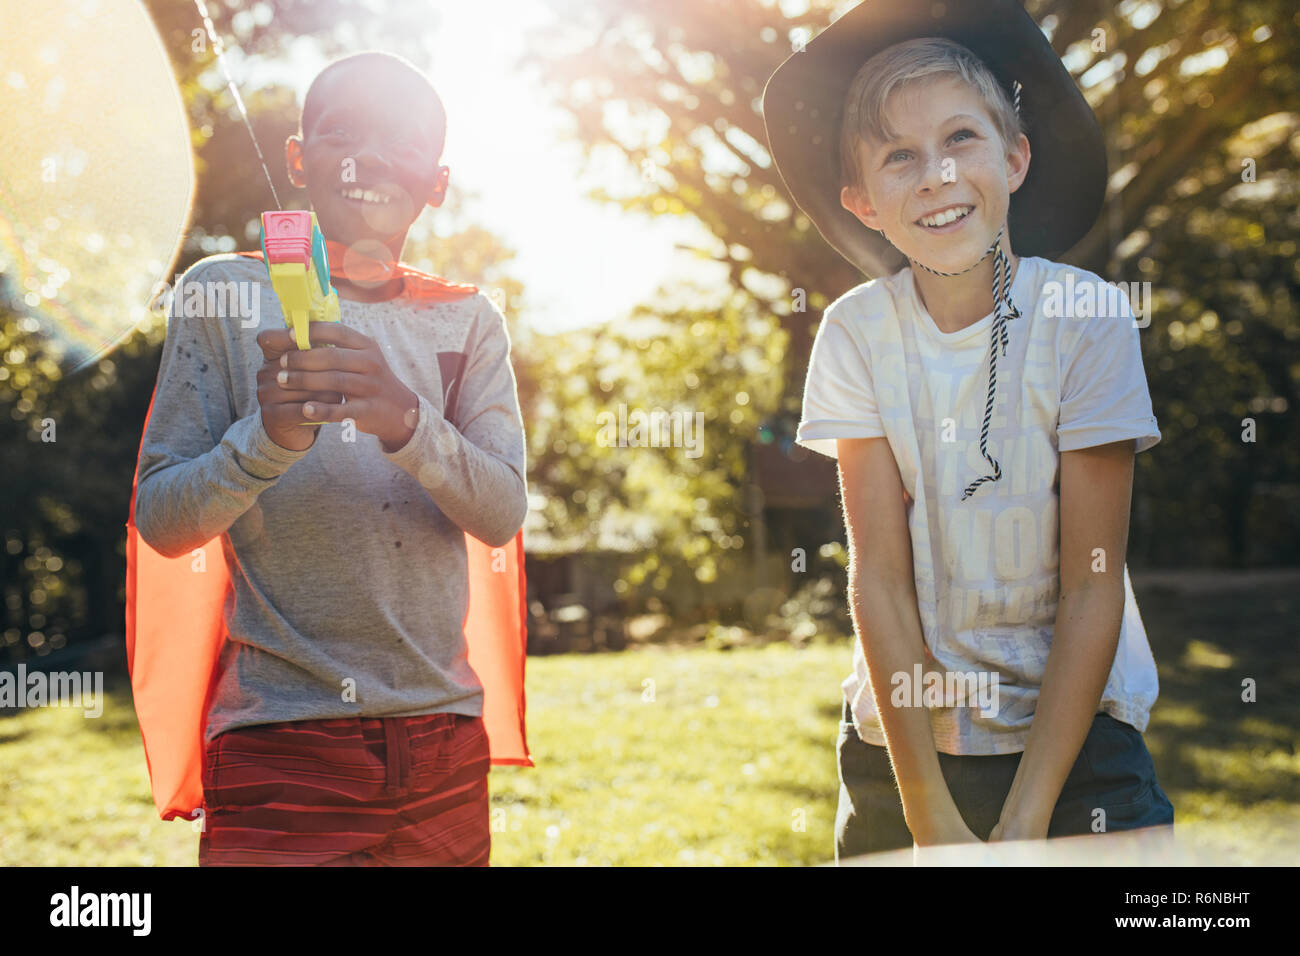 Happy young boys playing with water guns in backyard. Little boys with cape and cowboy hat playing outdoors. - Stock Image